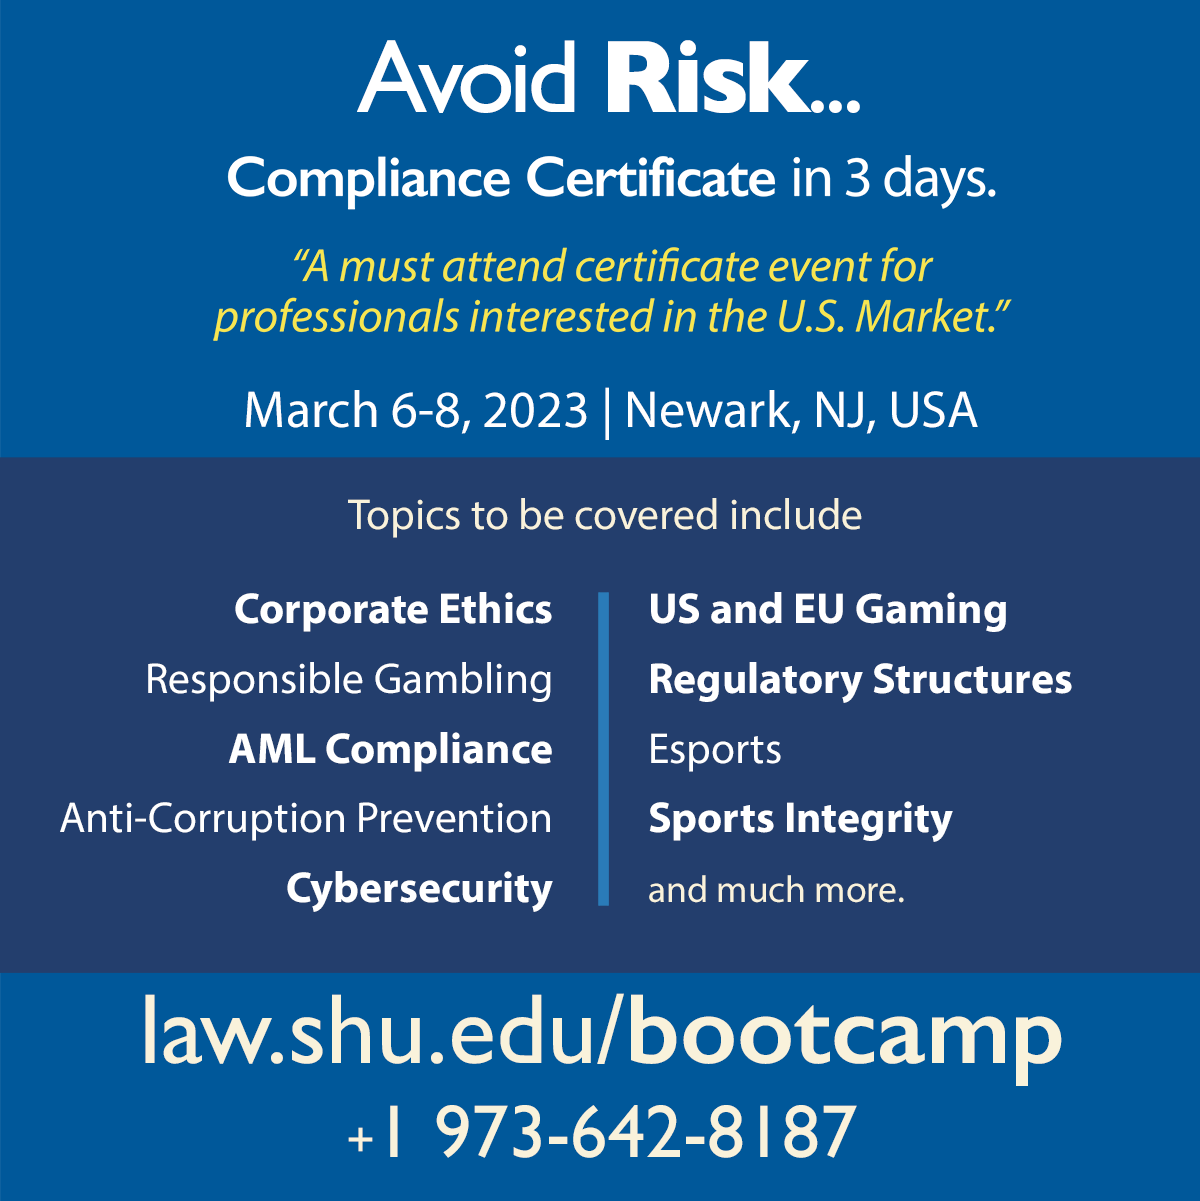 Avoid Risk - Compliance Certificate in 3 days